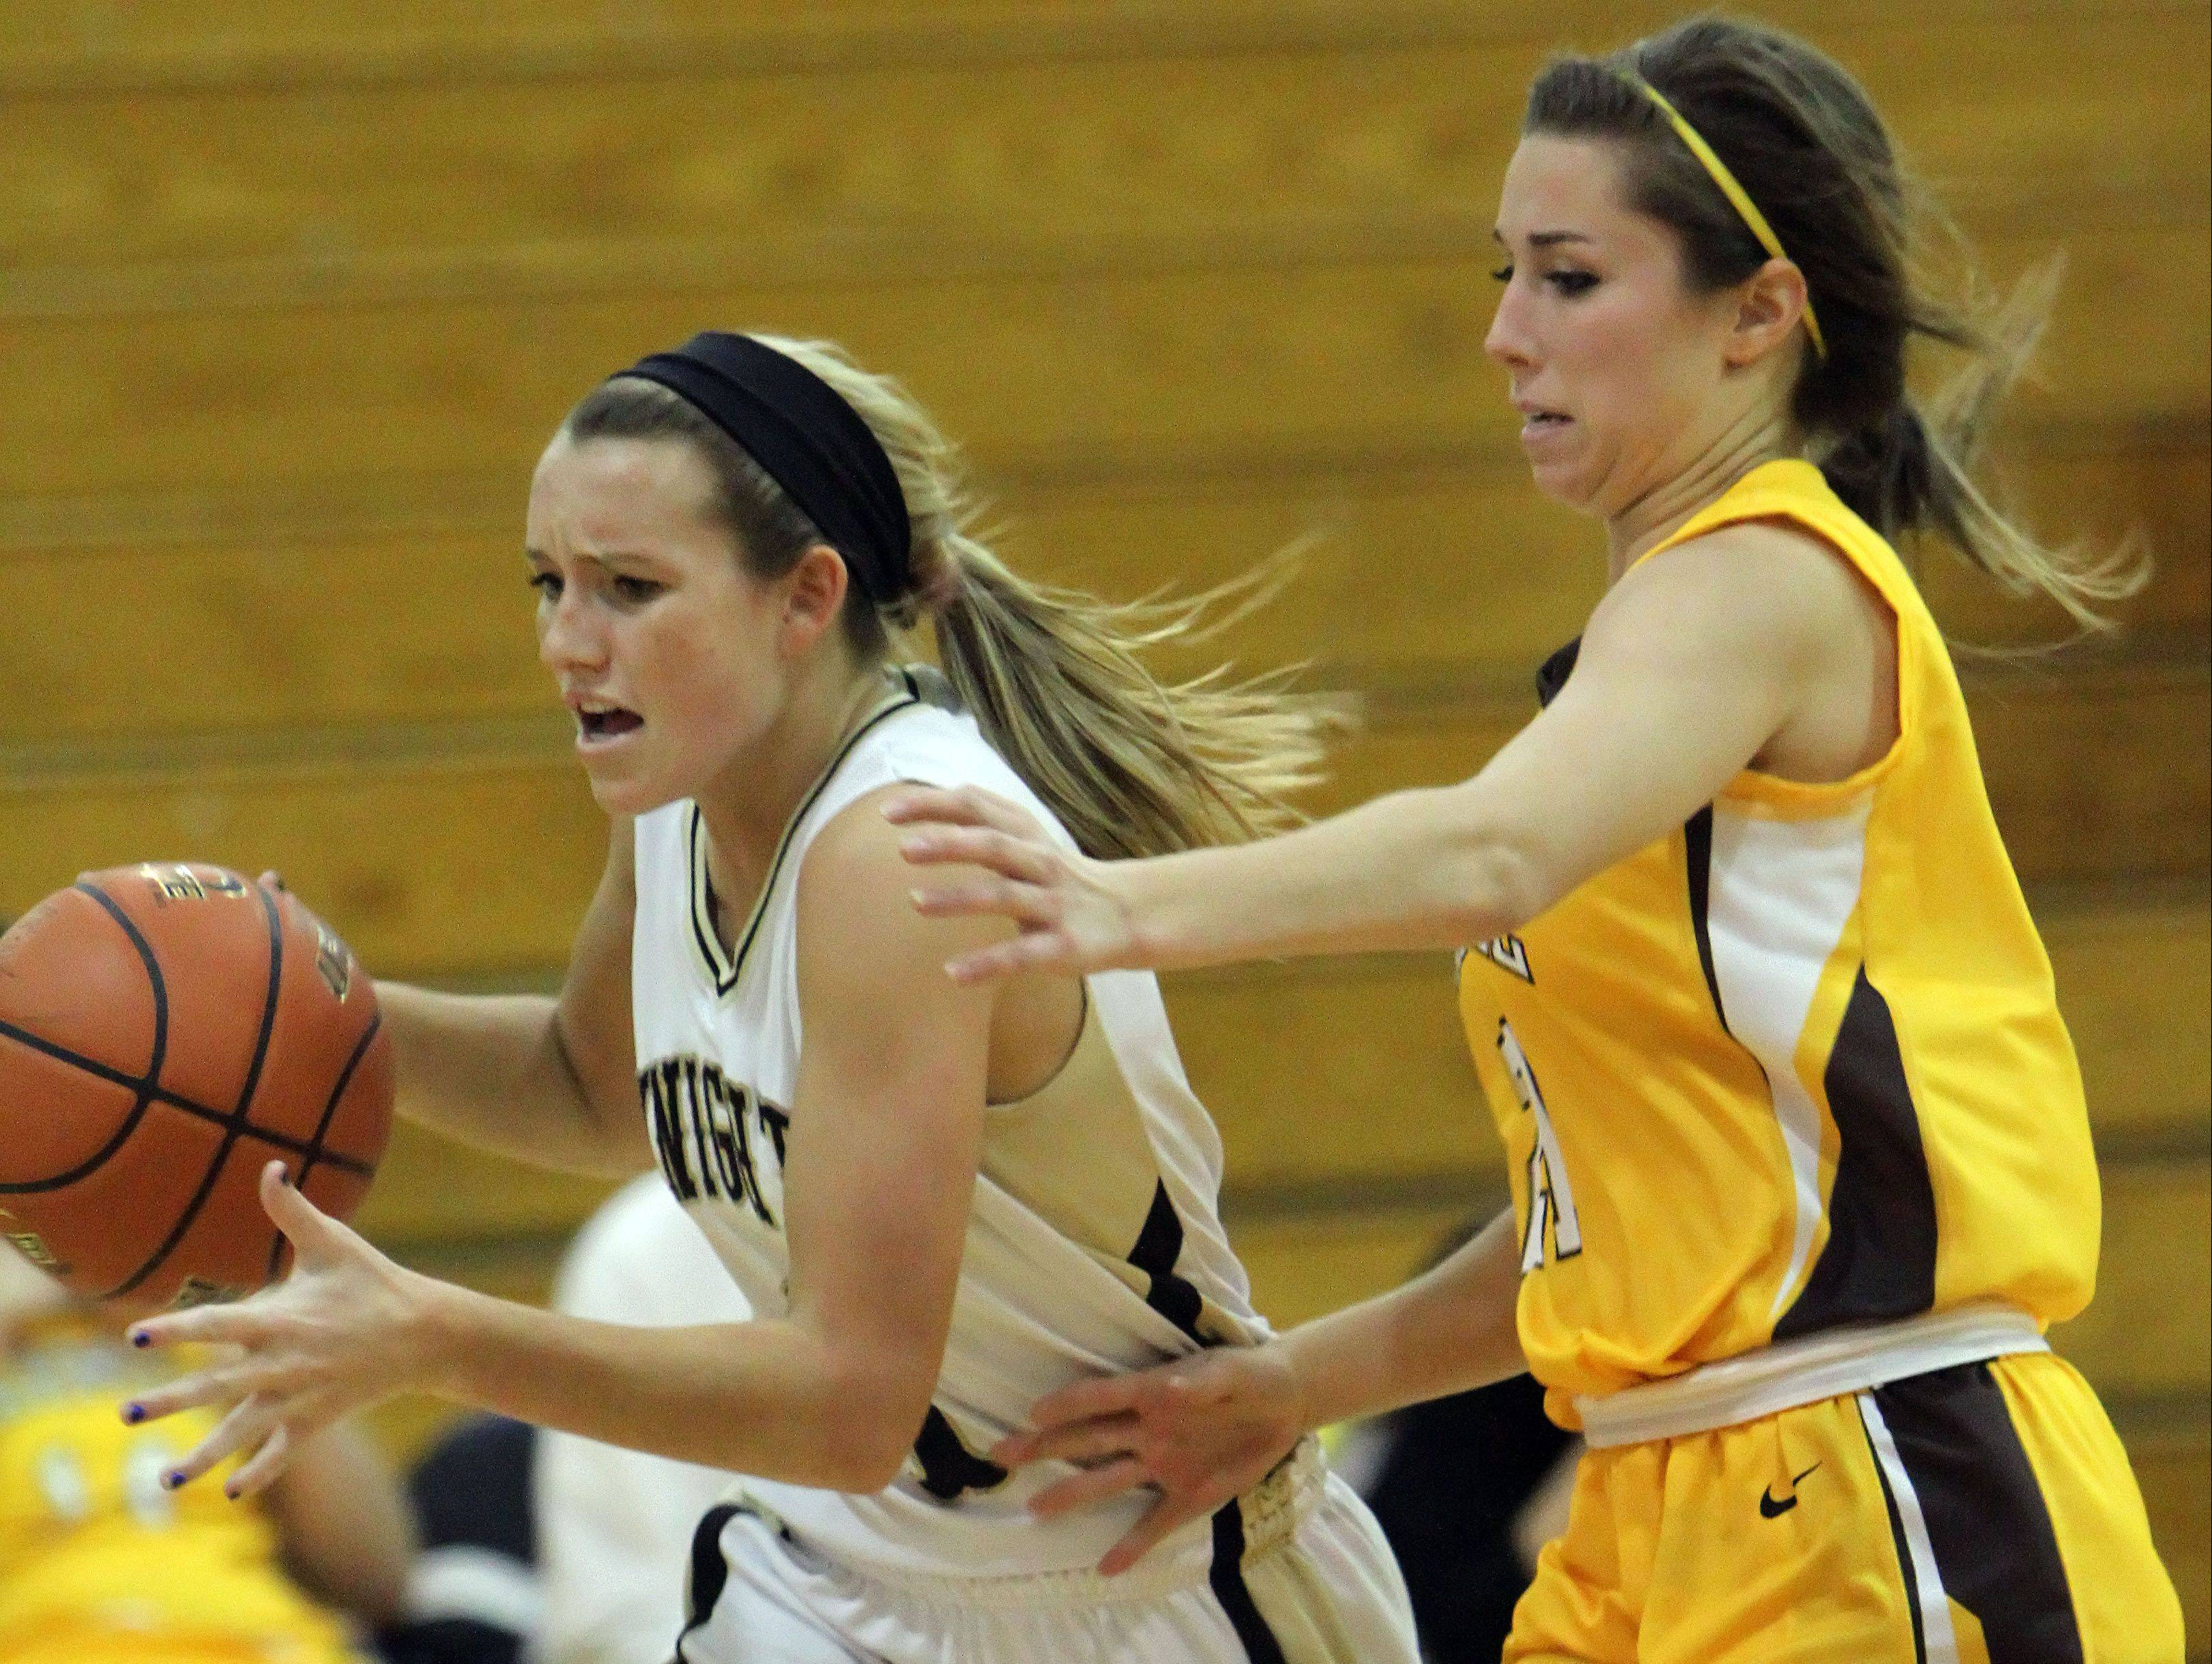 Grayslake North's Jordyn Bowen, left, drives on Carmel's Nicole Bitter during the Mundelein High School Turkey Tournament on Wednesday.